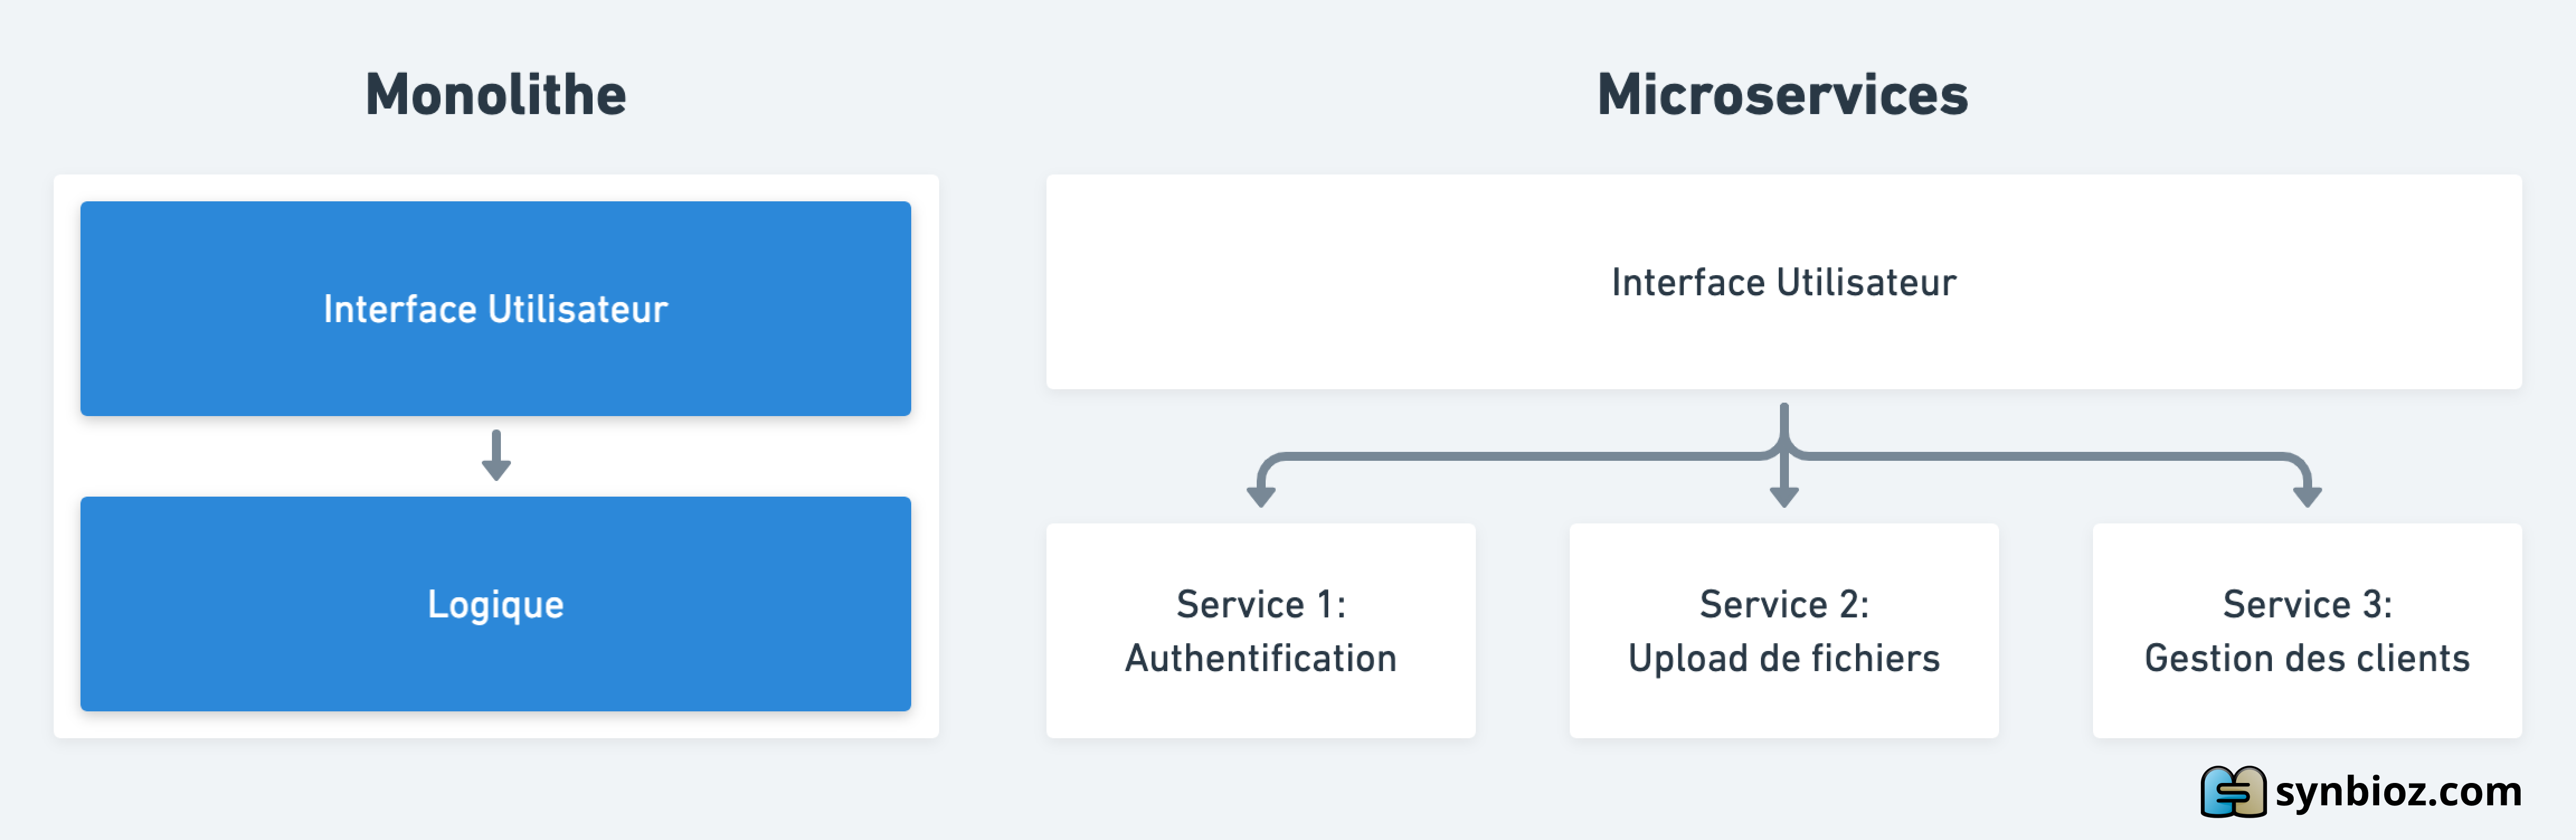 Monolithe versus Microservices